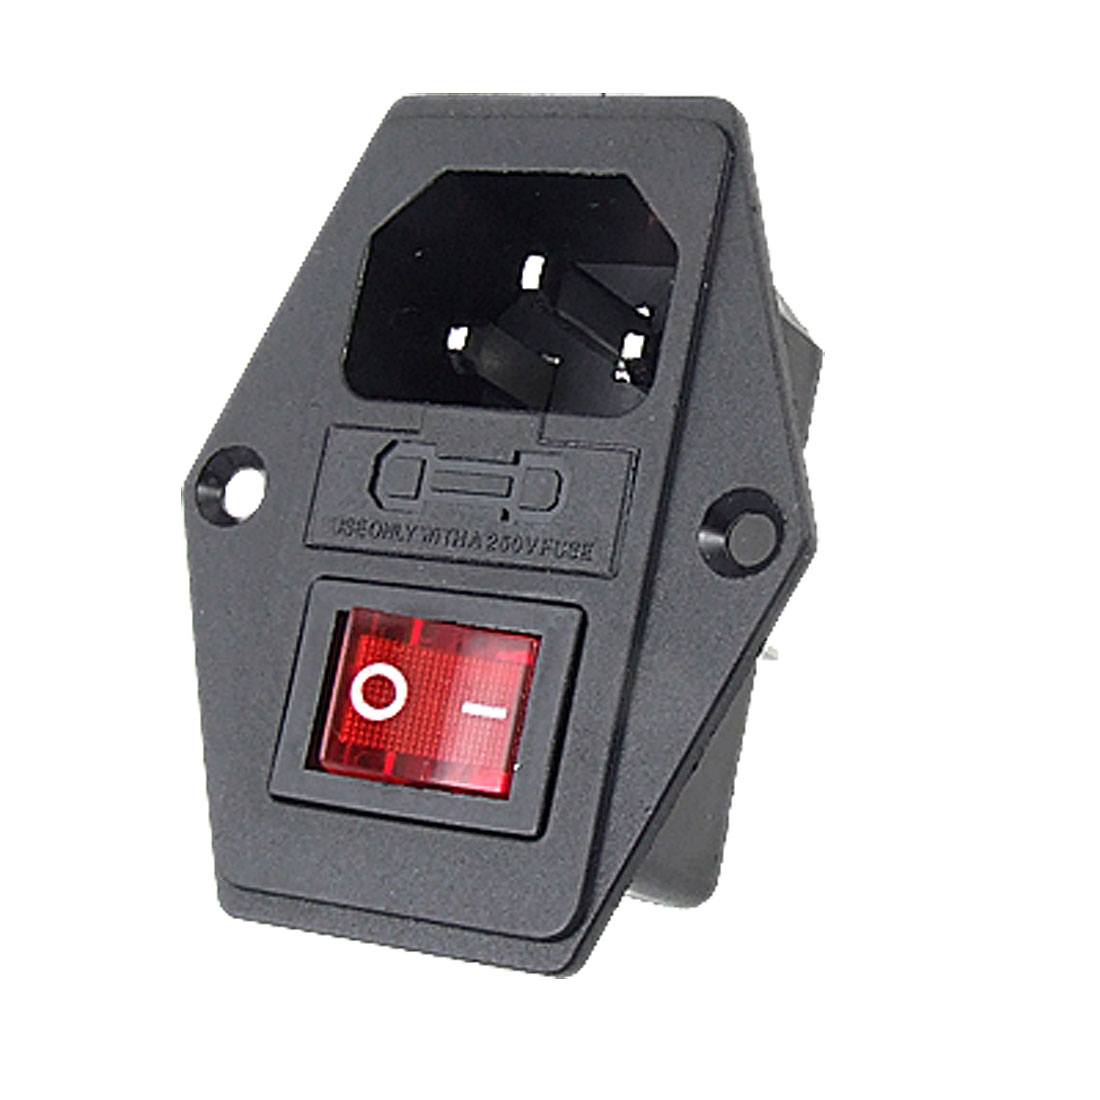 3P IEC320 C14 Inlet Module Fuse Switch Male Power Socket 10A 250V